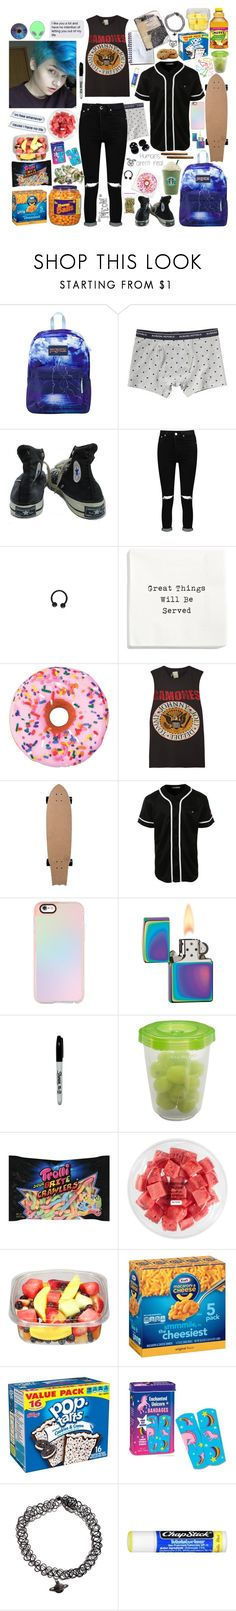 """""""Can we go to Walmart after coffee? {Ash"""" by writingandfasionarelyfe ❤ liked on Polyvore featuring JanSport, Banana Republic, Converse, Boohoo, Iscream, MadeWorn, LE3NO, Casetify, Zippo and American Apparel"""